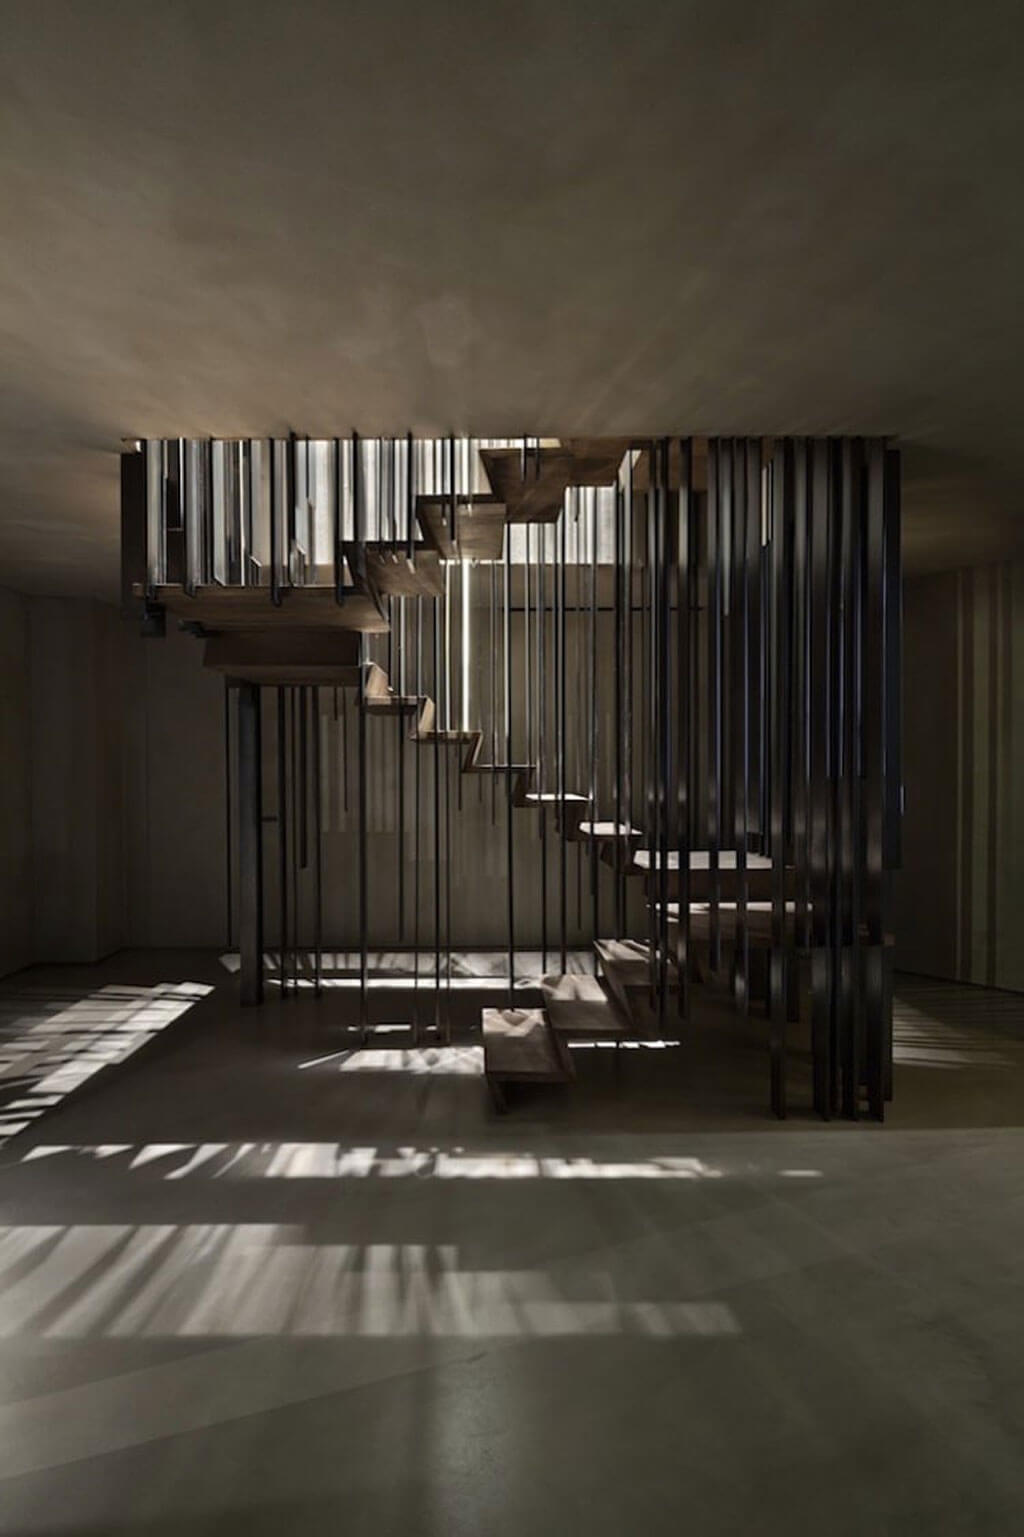 Staircase designs make use of lines in innovative ways